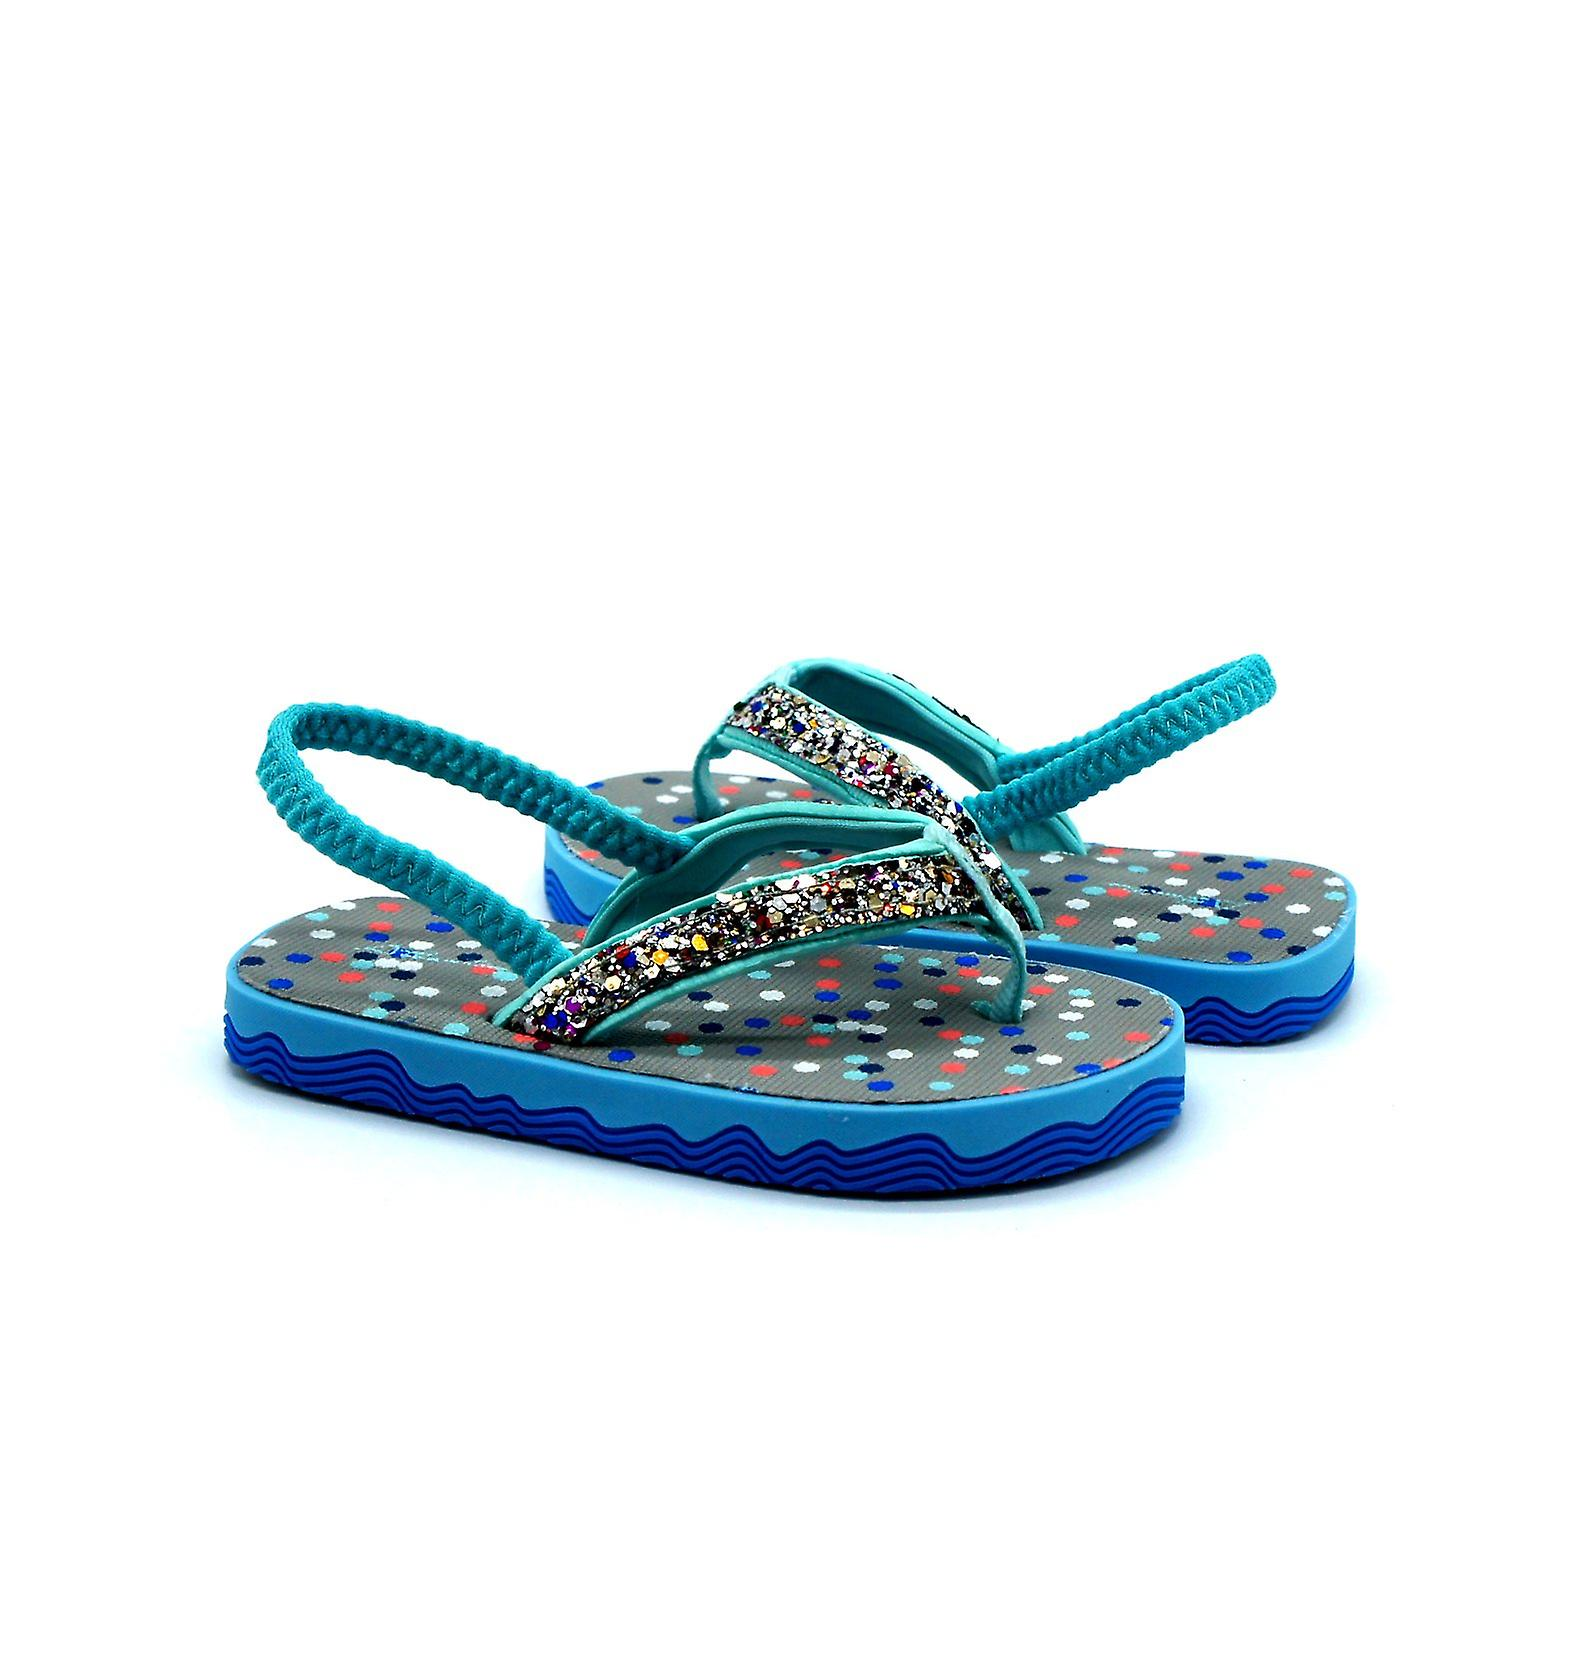 Atlantis Shoes Kids Girls Supportive Cushioned Comfortable Sandals Flip Flops Twinkle Turquoise